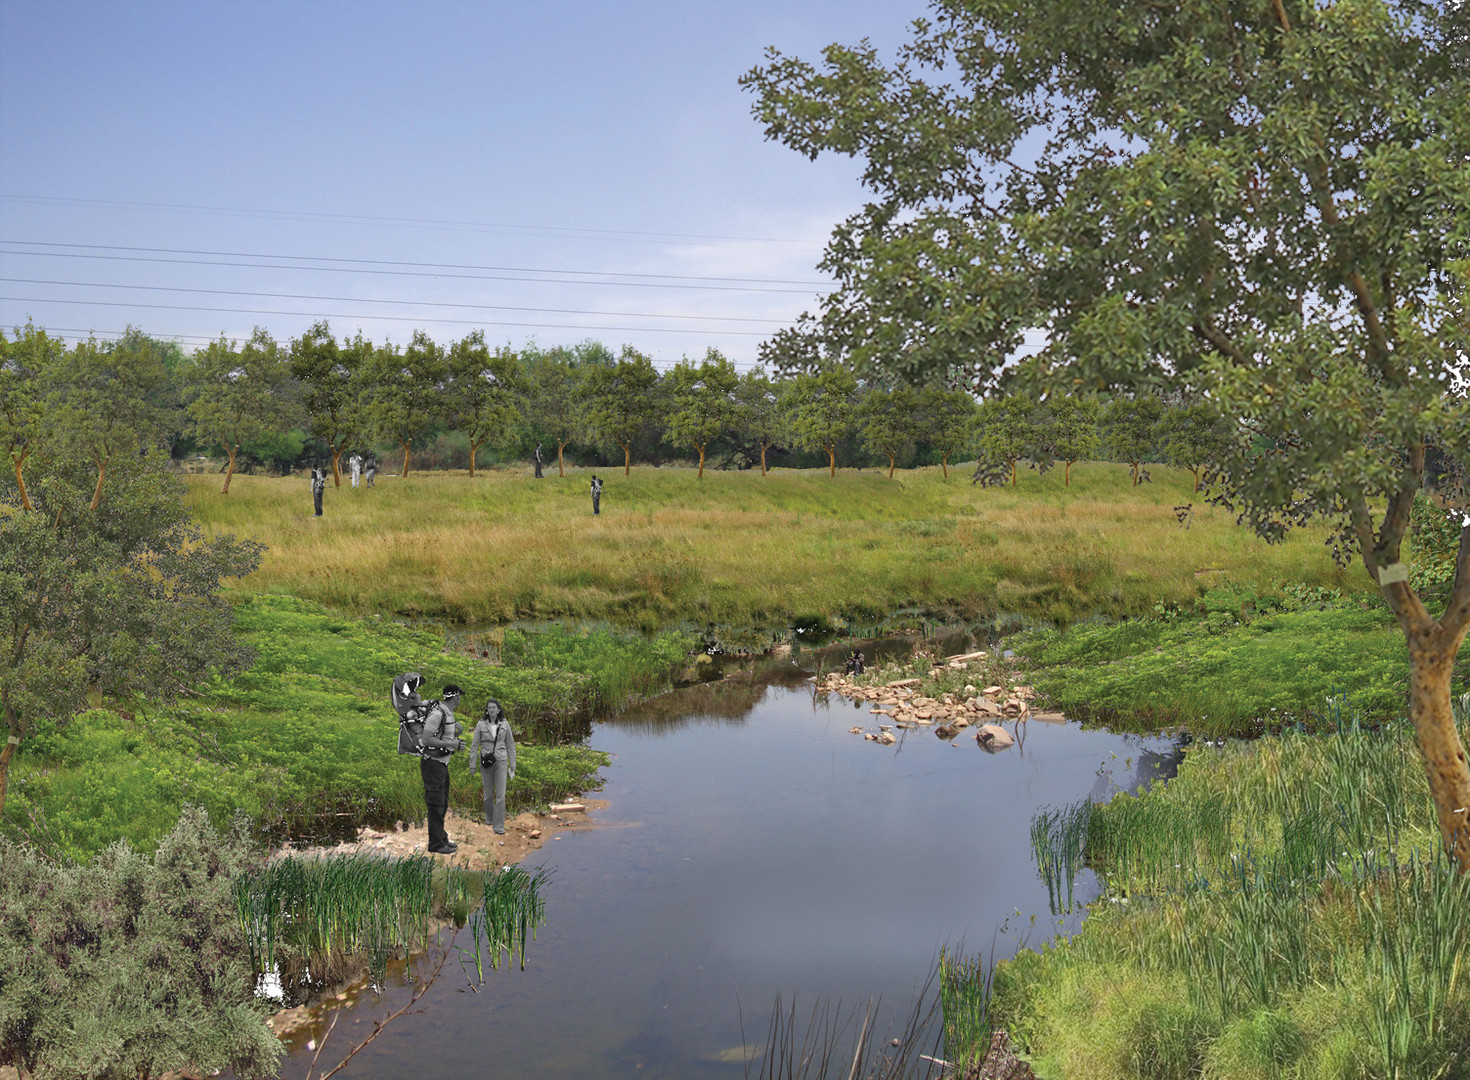 Artists impression of rehabilitated river